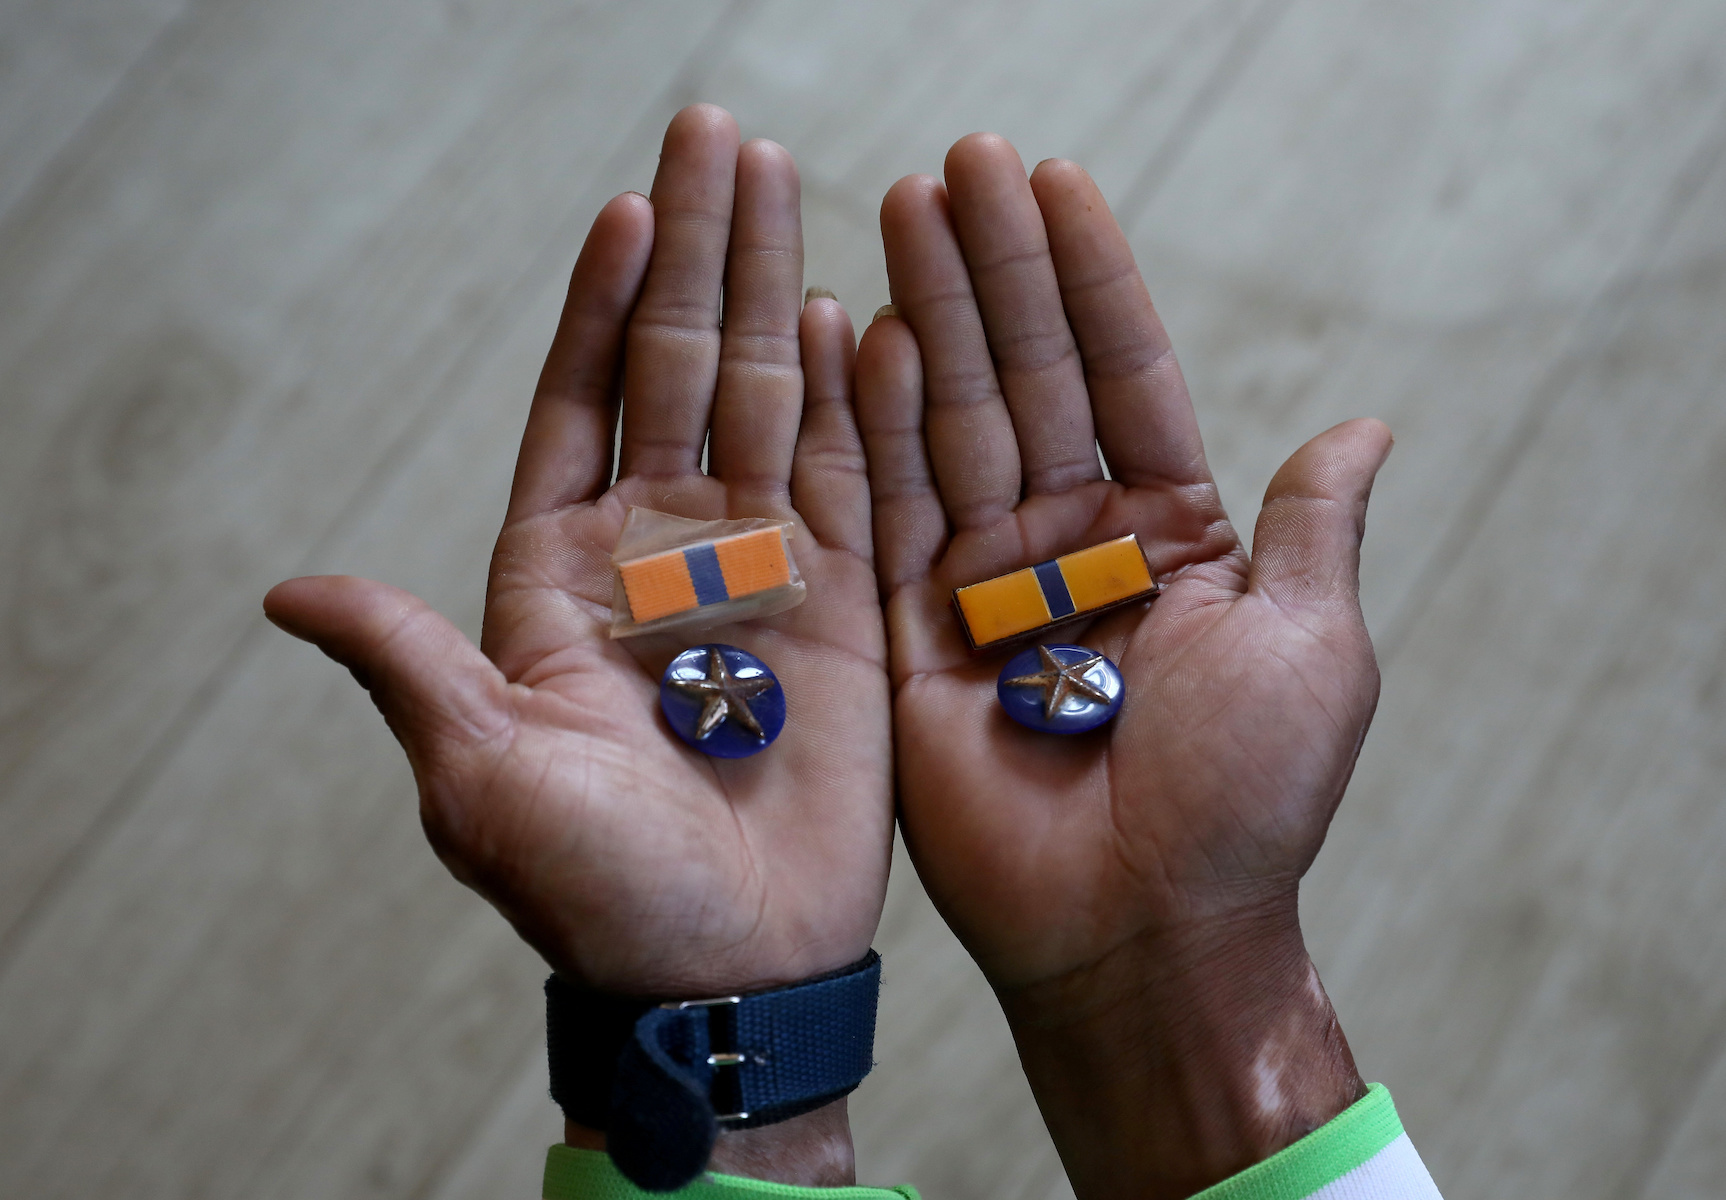 A Myanmar national who said he was a policeman and recently fled to India shows his badges as he poses at an undisclosed location